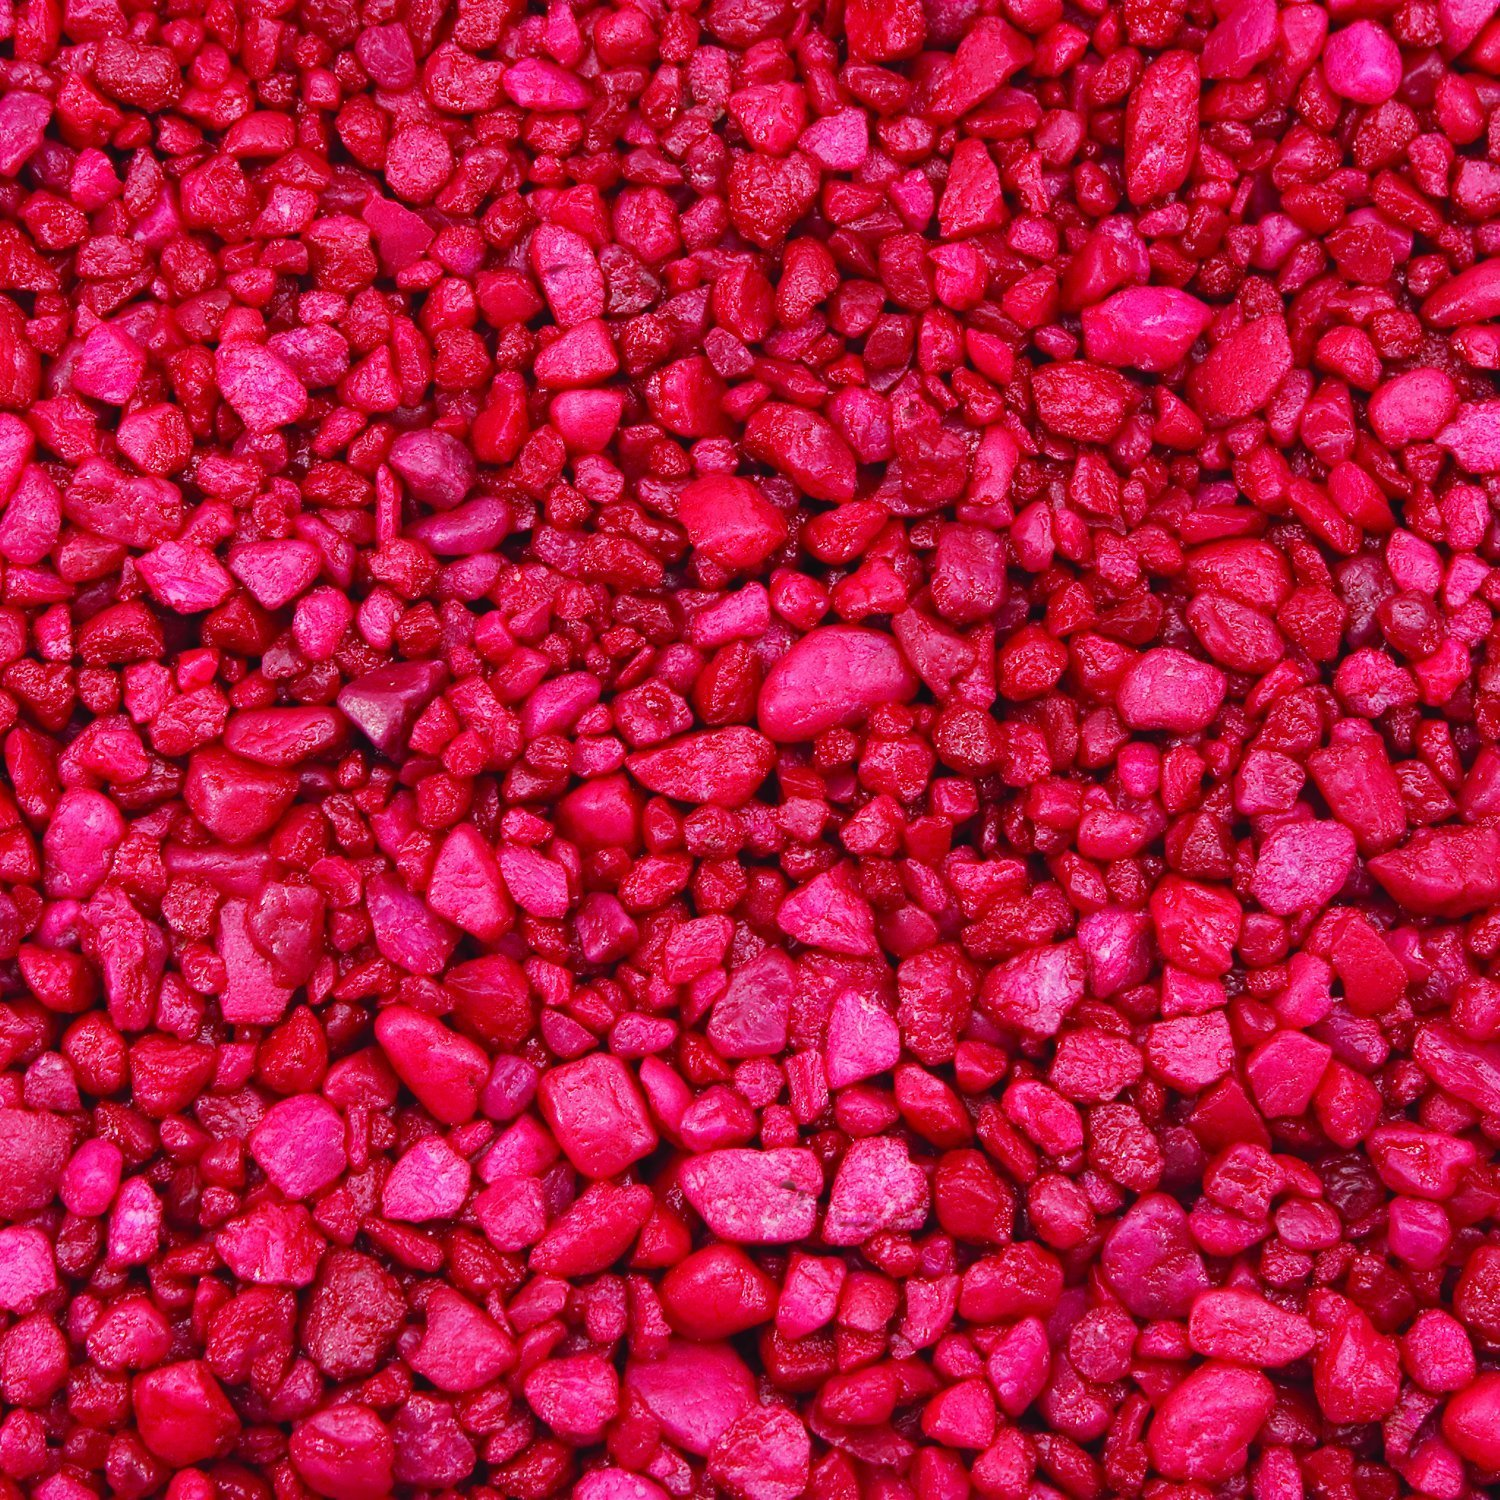 Spectrastone Special Red Aquarium Gravel for Freshwater Aquariums, 25-Pound Bag by Spectrastone